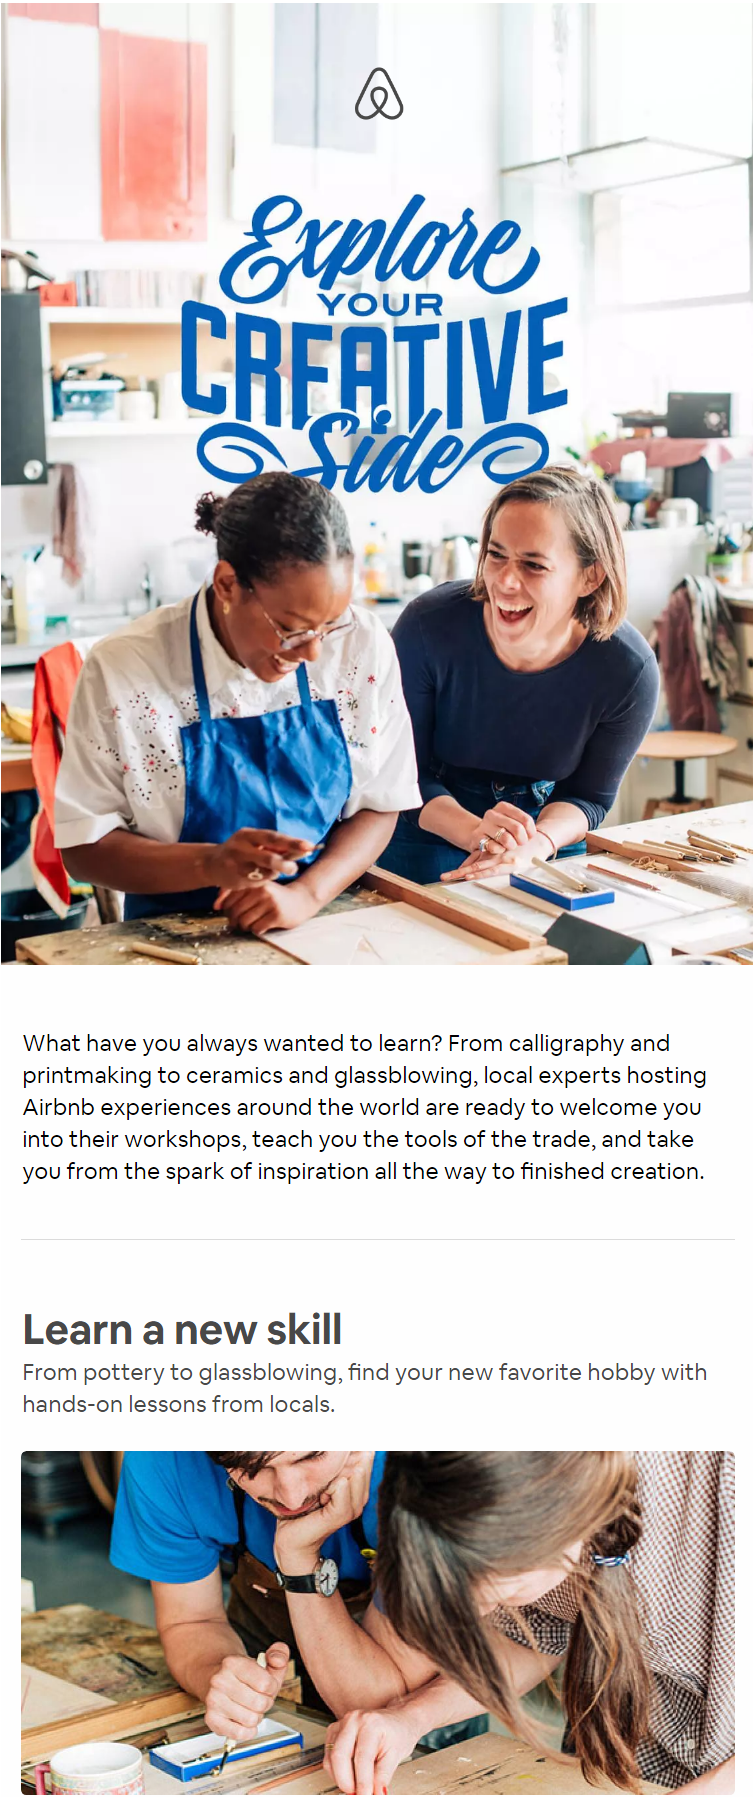 What have you always wanted to learn? From calligraphy and printmaking to ceramics and glassblowing,...